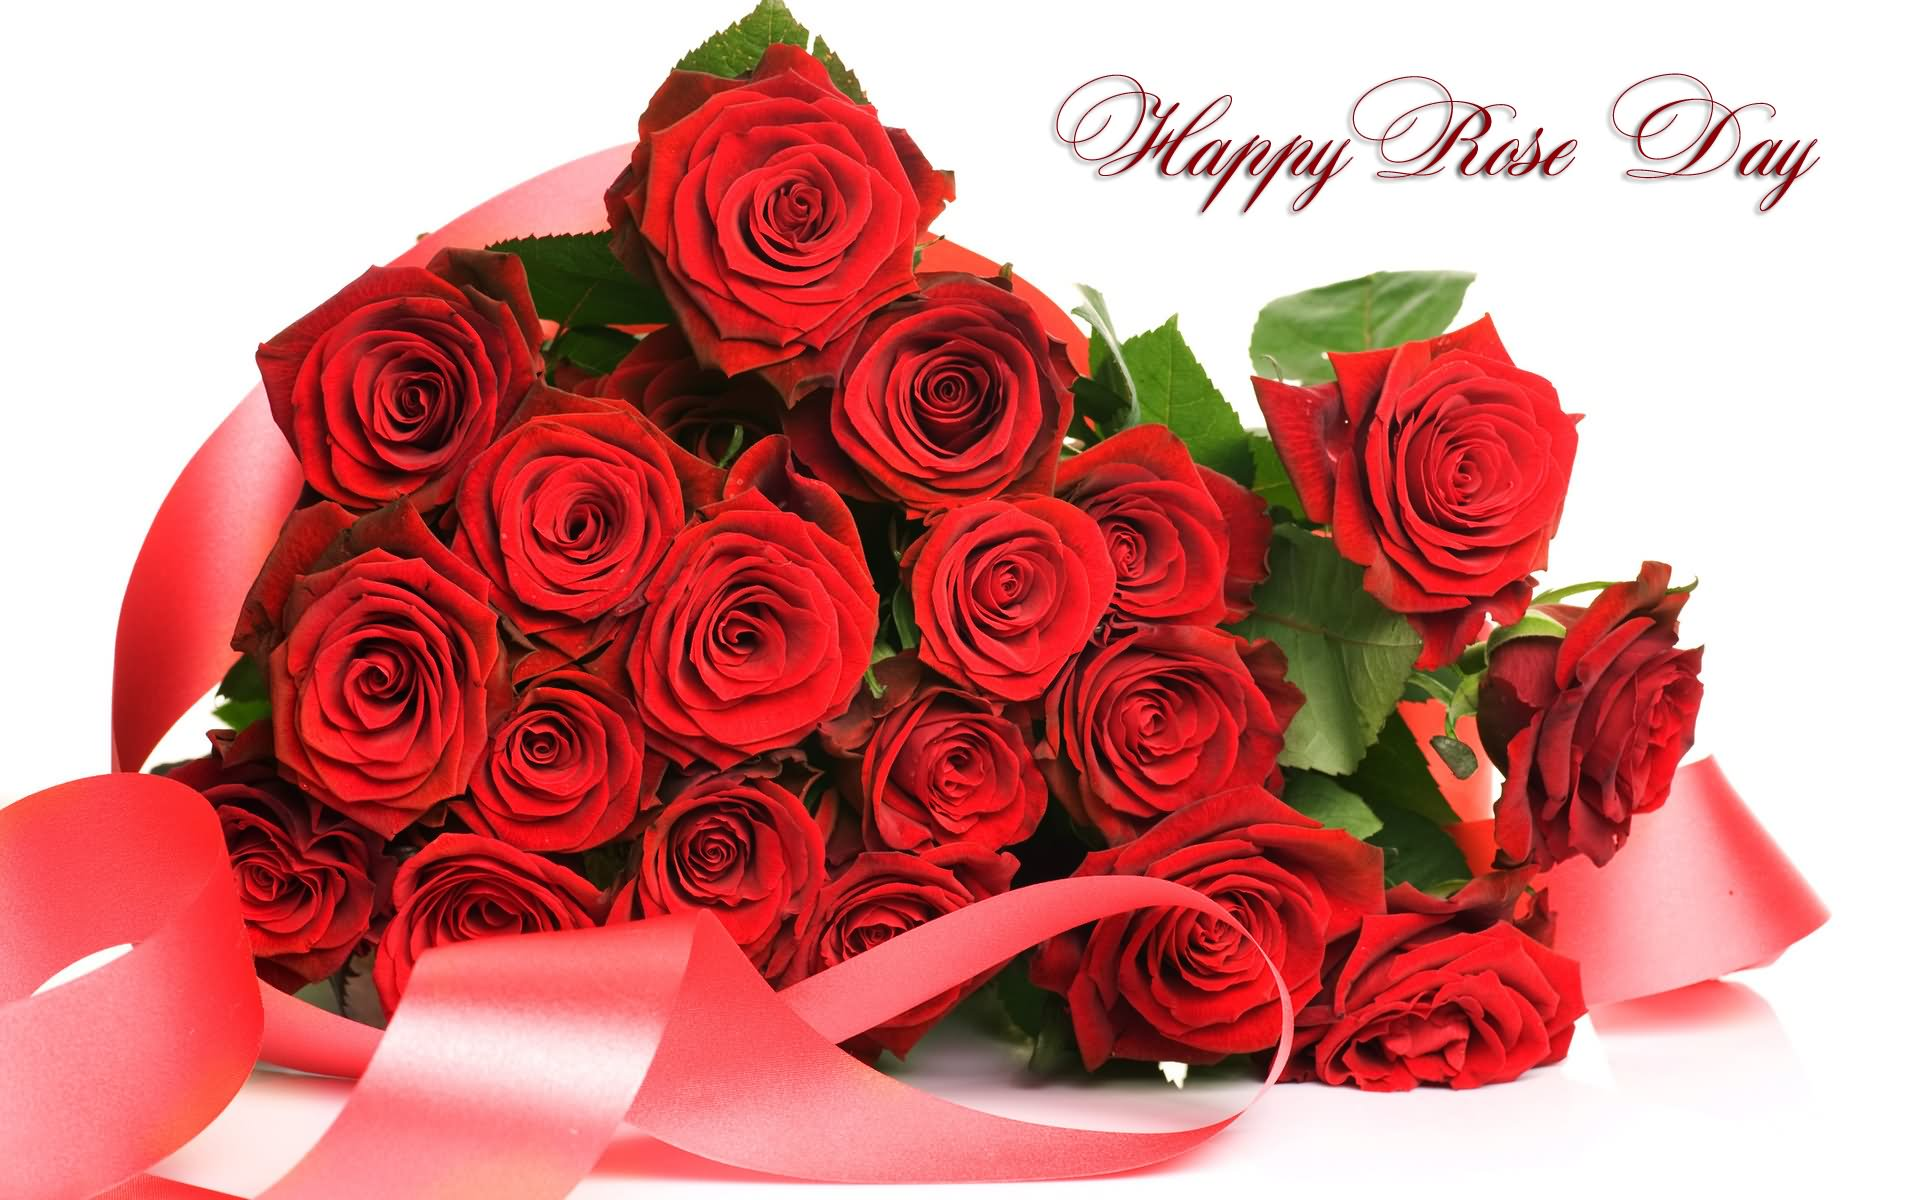 Happy Rose Day Roses Bouquet